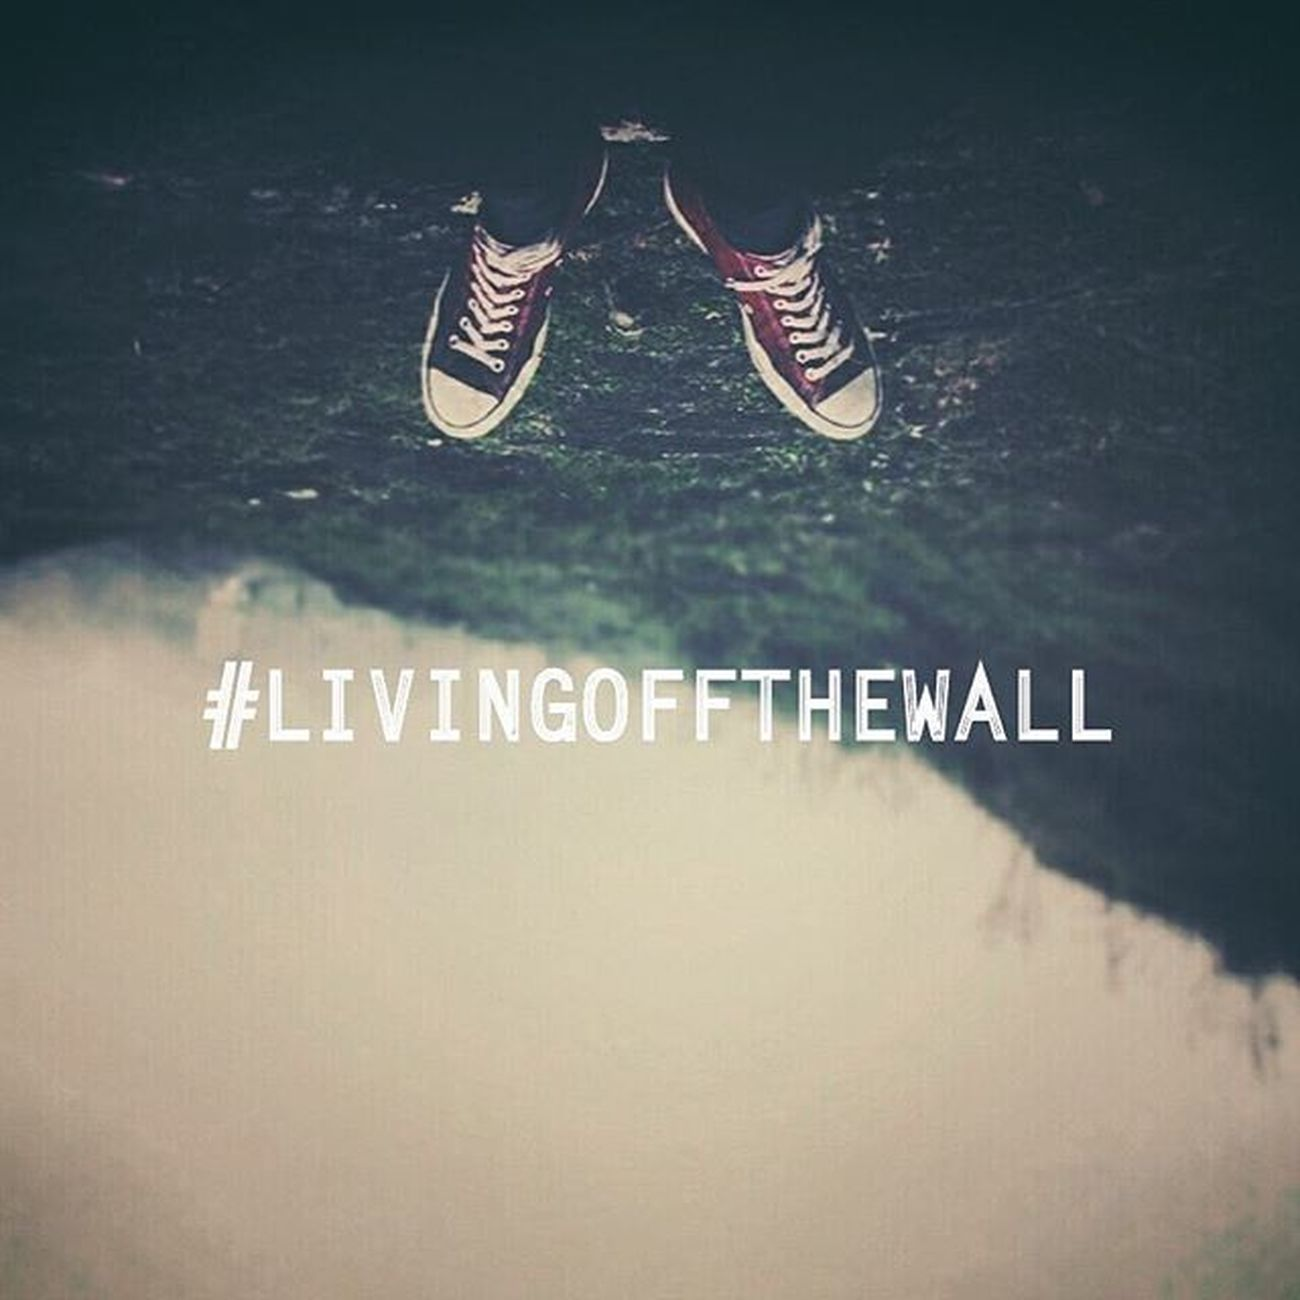 Off the wall™ Vagamon Dcsmat Luminance 2K15 RideOrDie Fun Kurishumala Livingoffthewall 1966culture Notvans Converse Chillypaste Lub Prayers Frnds Insta InstaFreeks Instadaily Hastag  Peace Instadaily Picoftheday Followmefollowyou ∆_∆